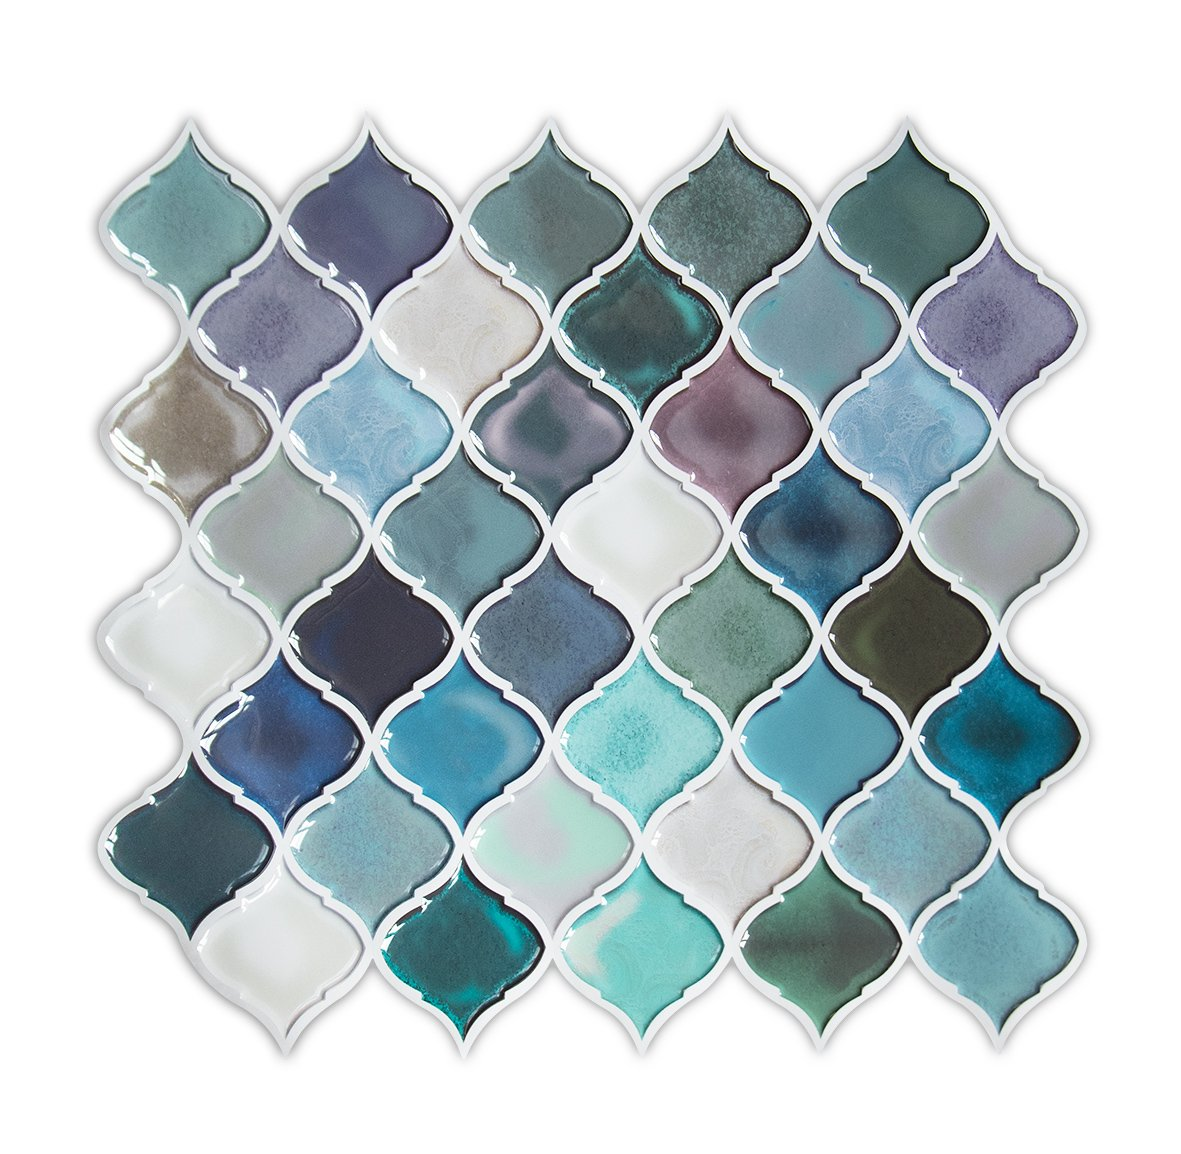 Arabesque Peel and Stick Tile Backsplash, Anti Corrosion Self Stick Backsplash for Kitchen 10x11 Pack of 2 (Sample) HUE DECORATION